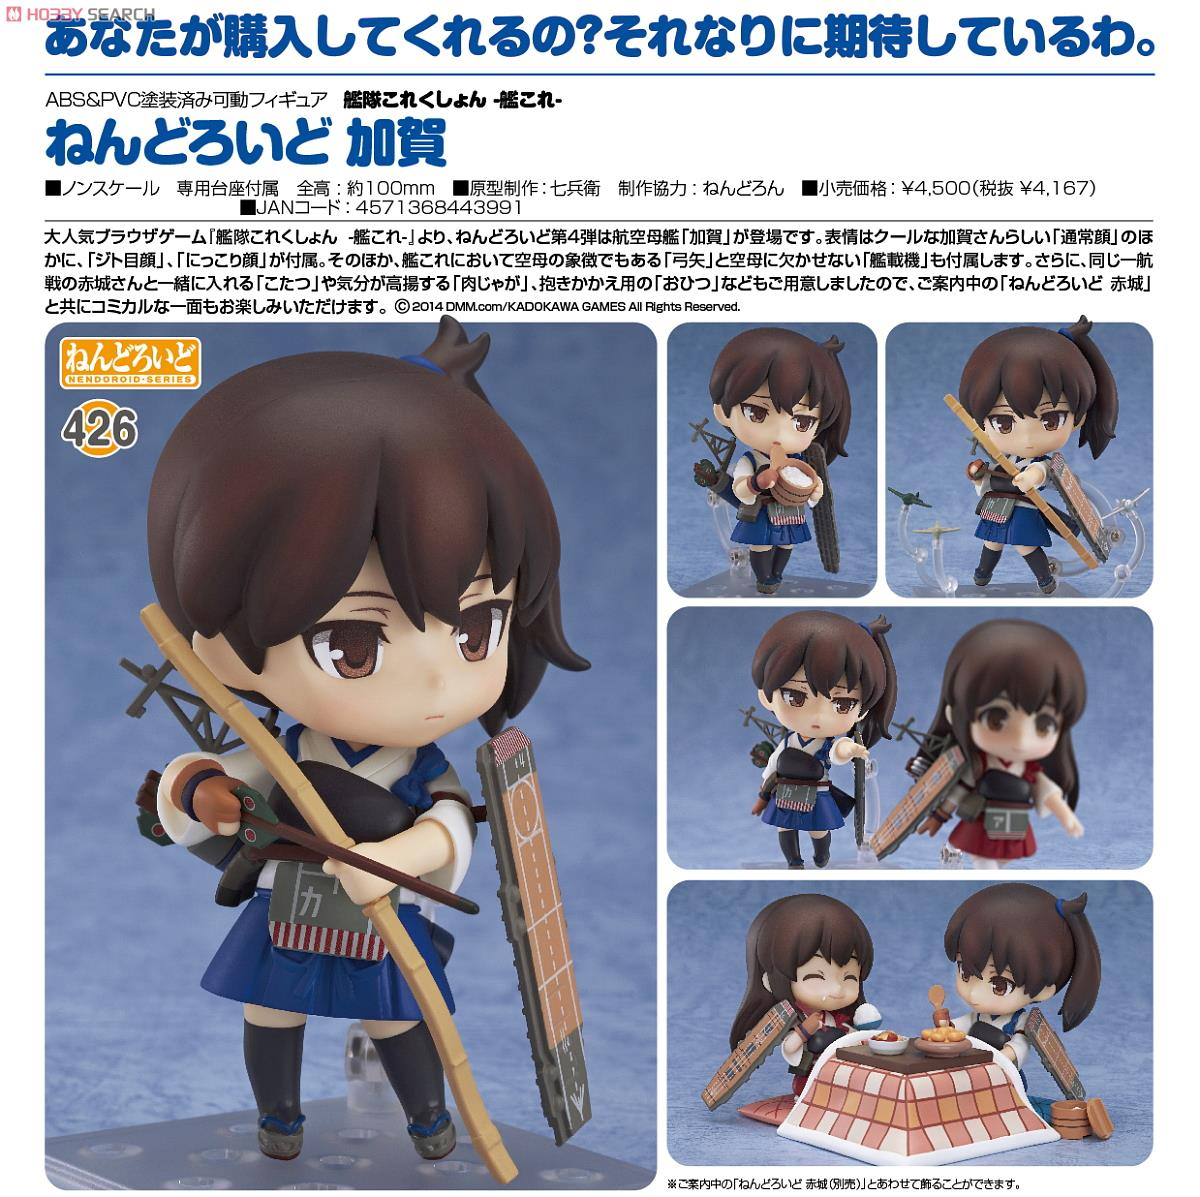 Nendoroid Kaga [Kantai Collection]